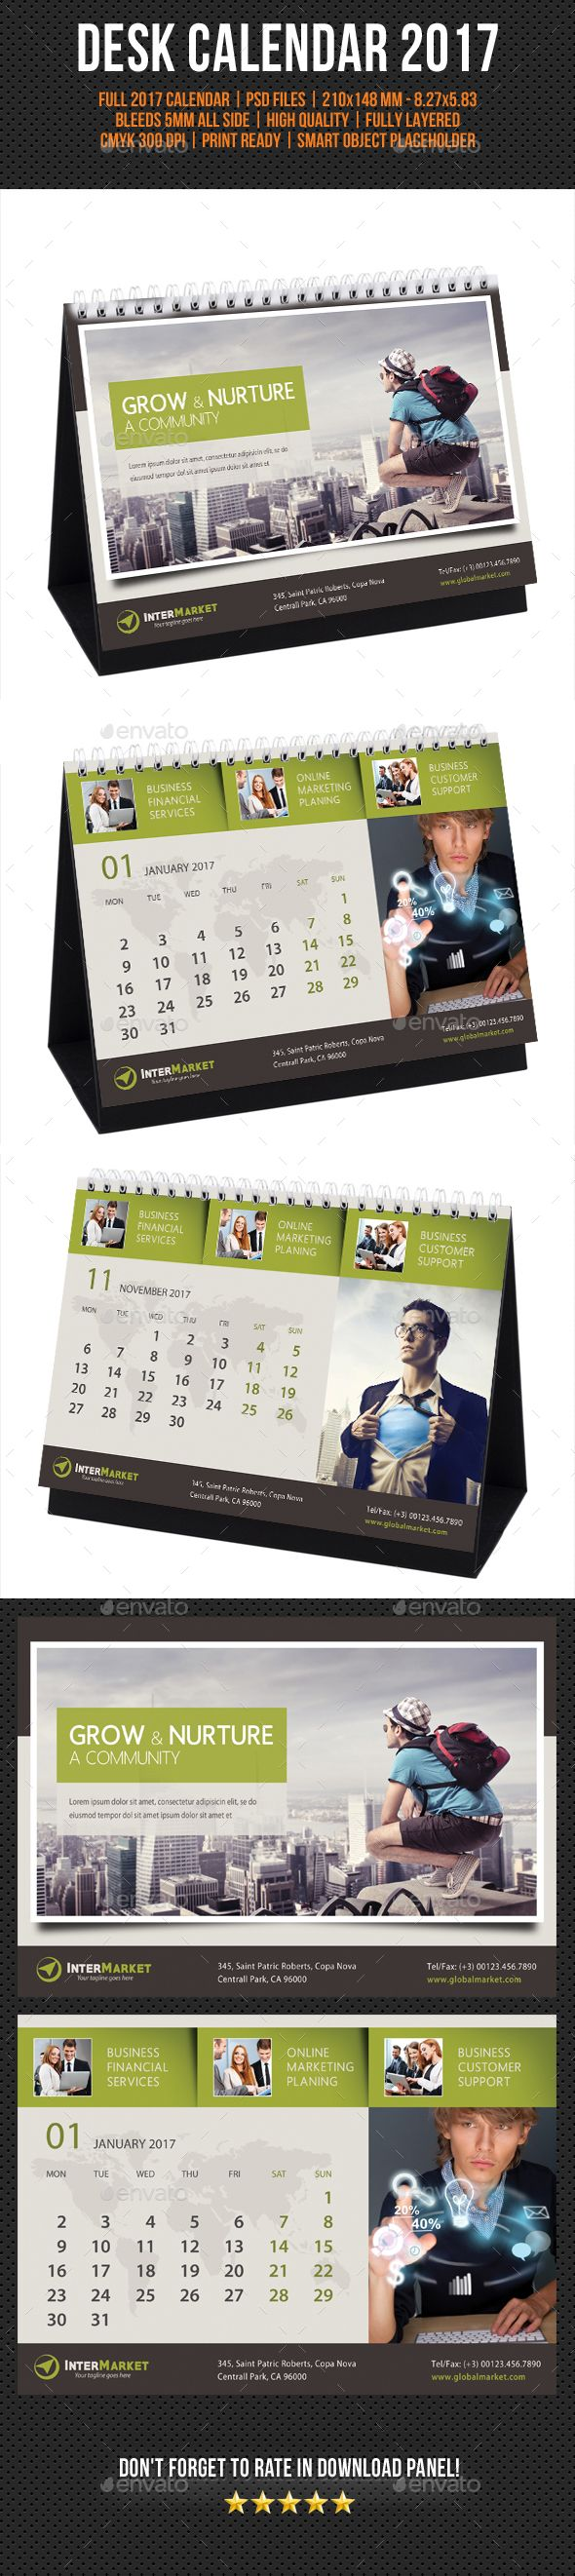 Corporate Calendar Theme Ideas : Unique calendar templates ideas on pinterest